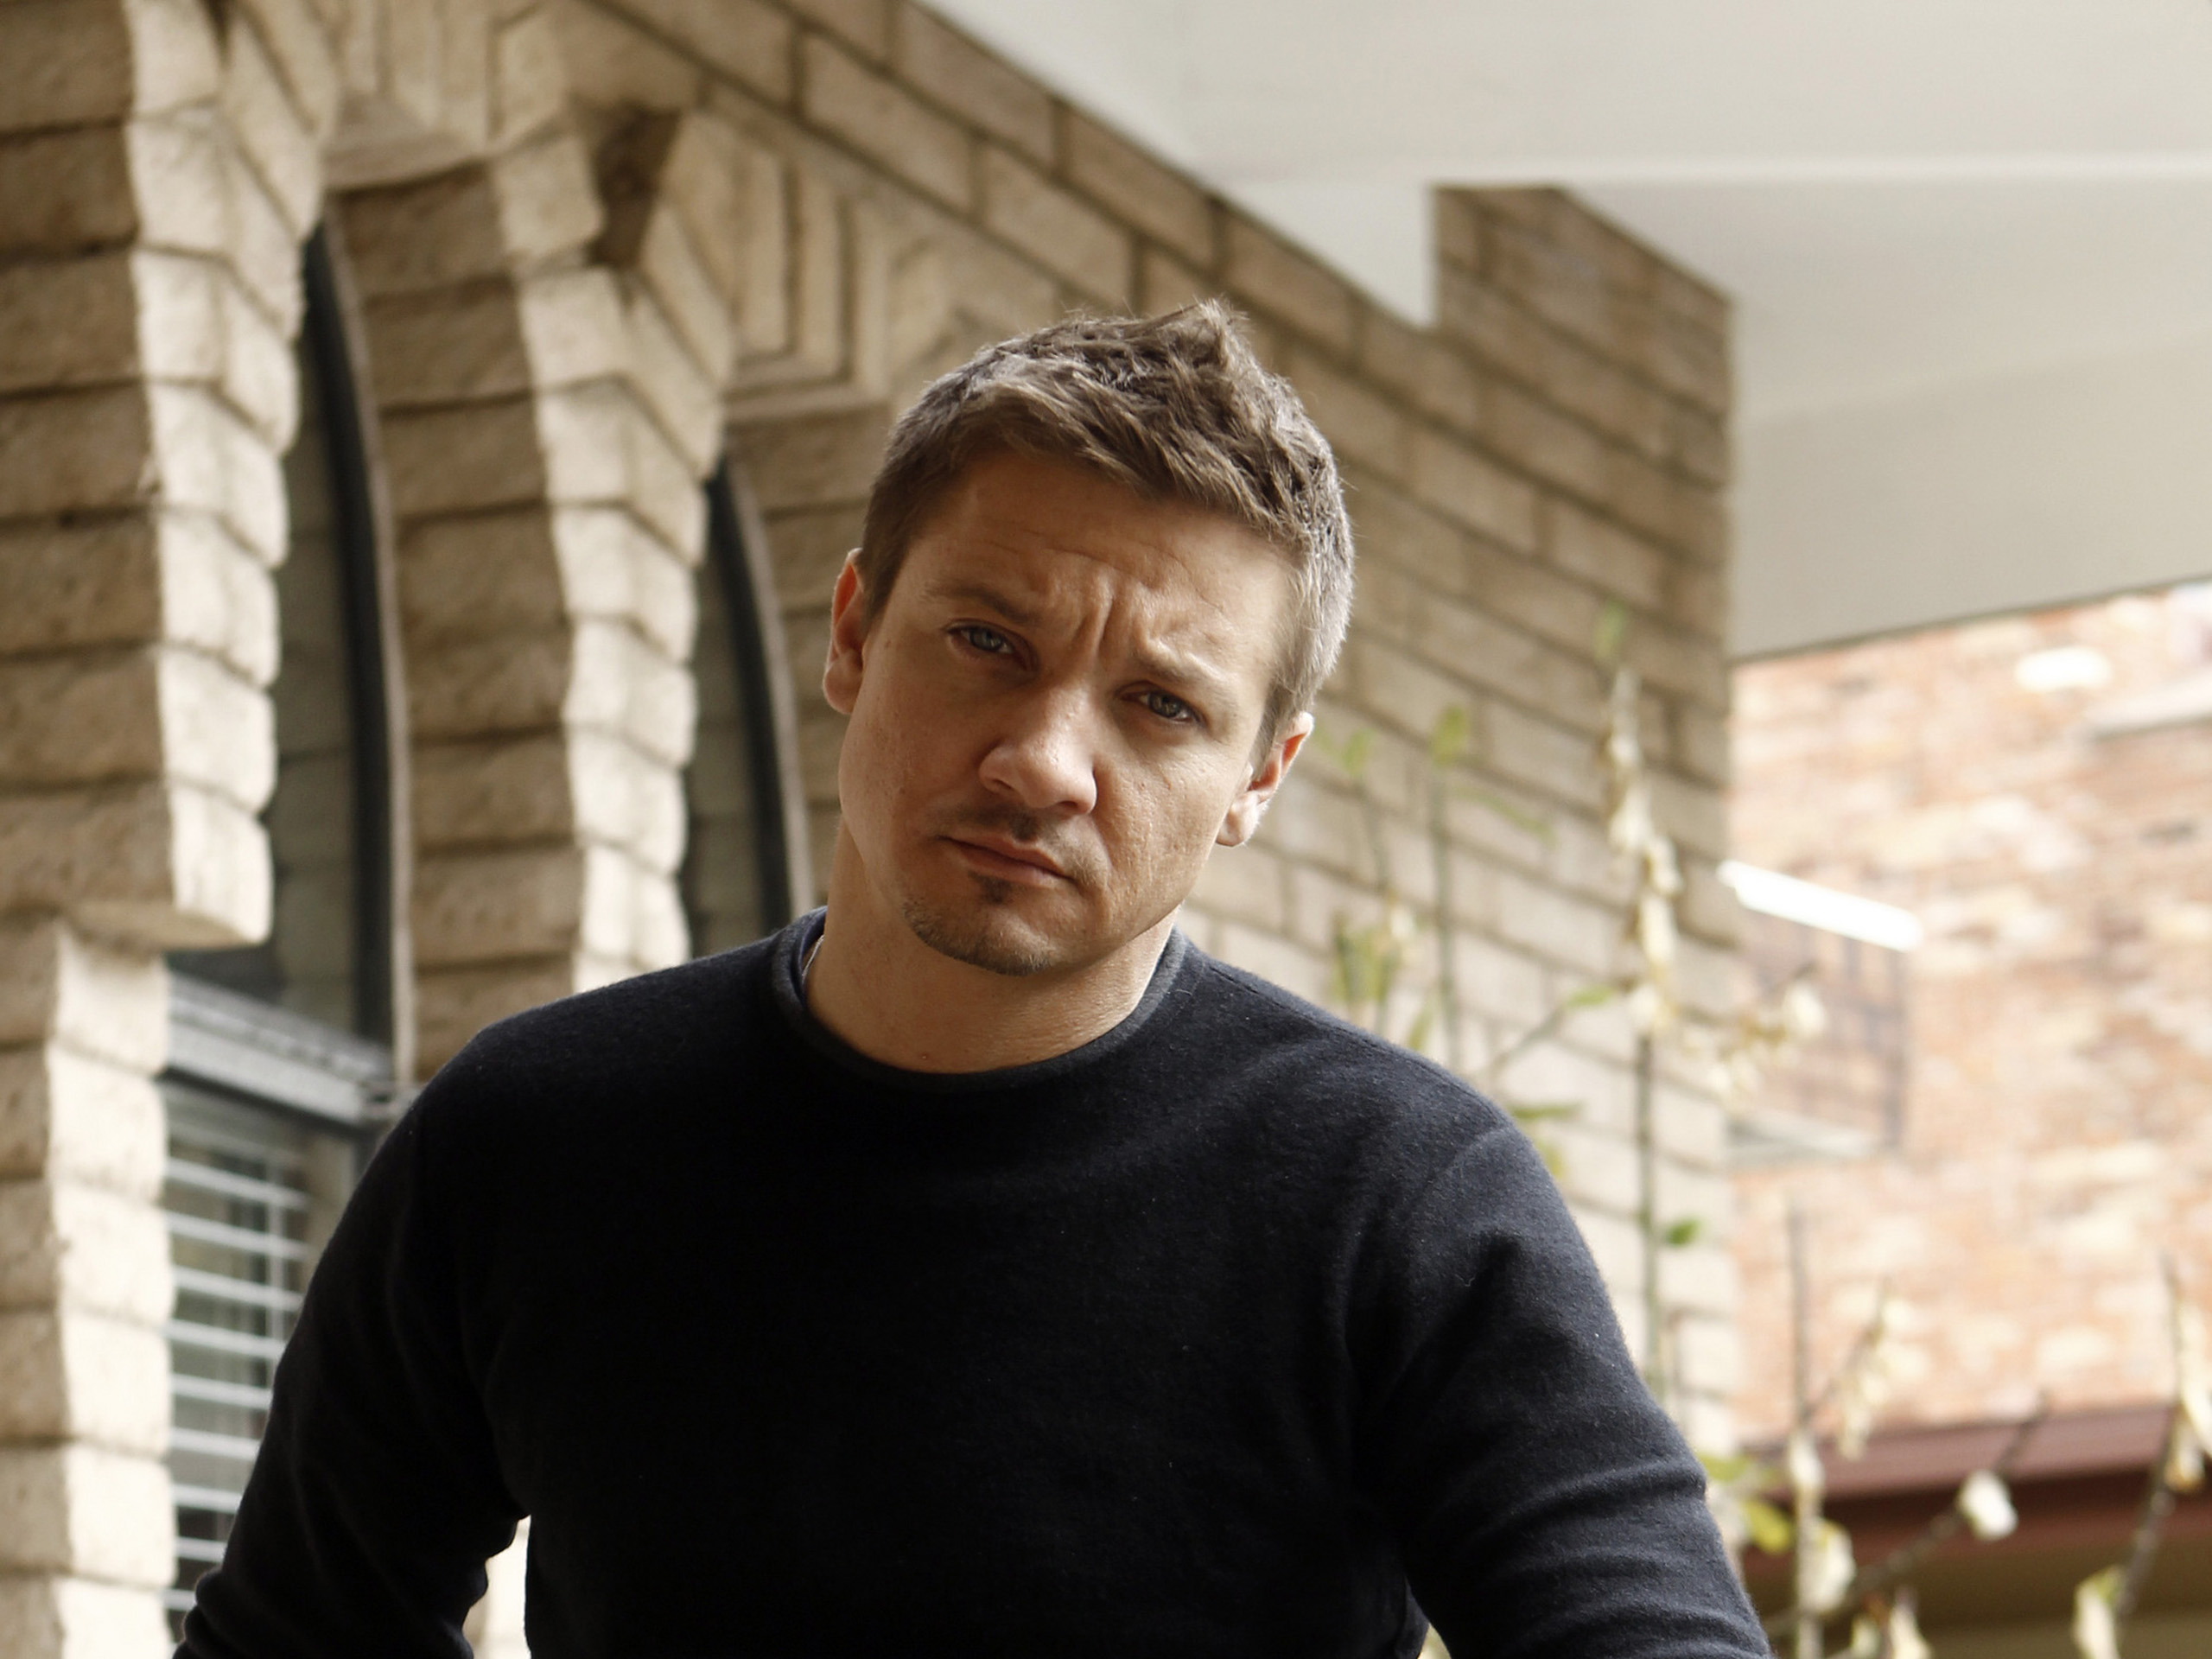 2560x1920 - Jeremy Renner Wallpapers 10